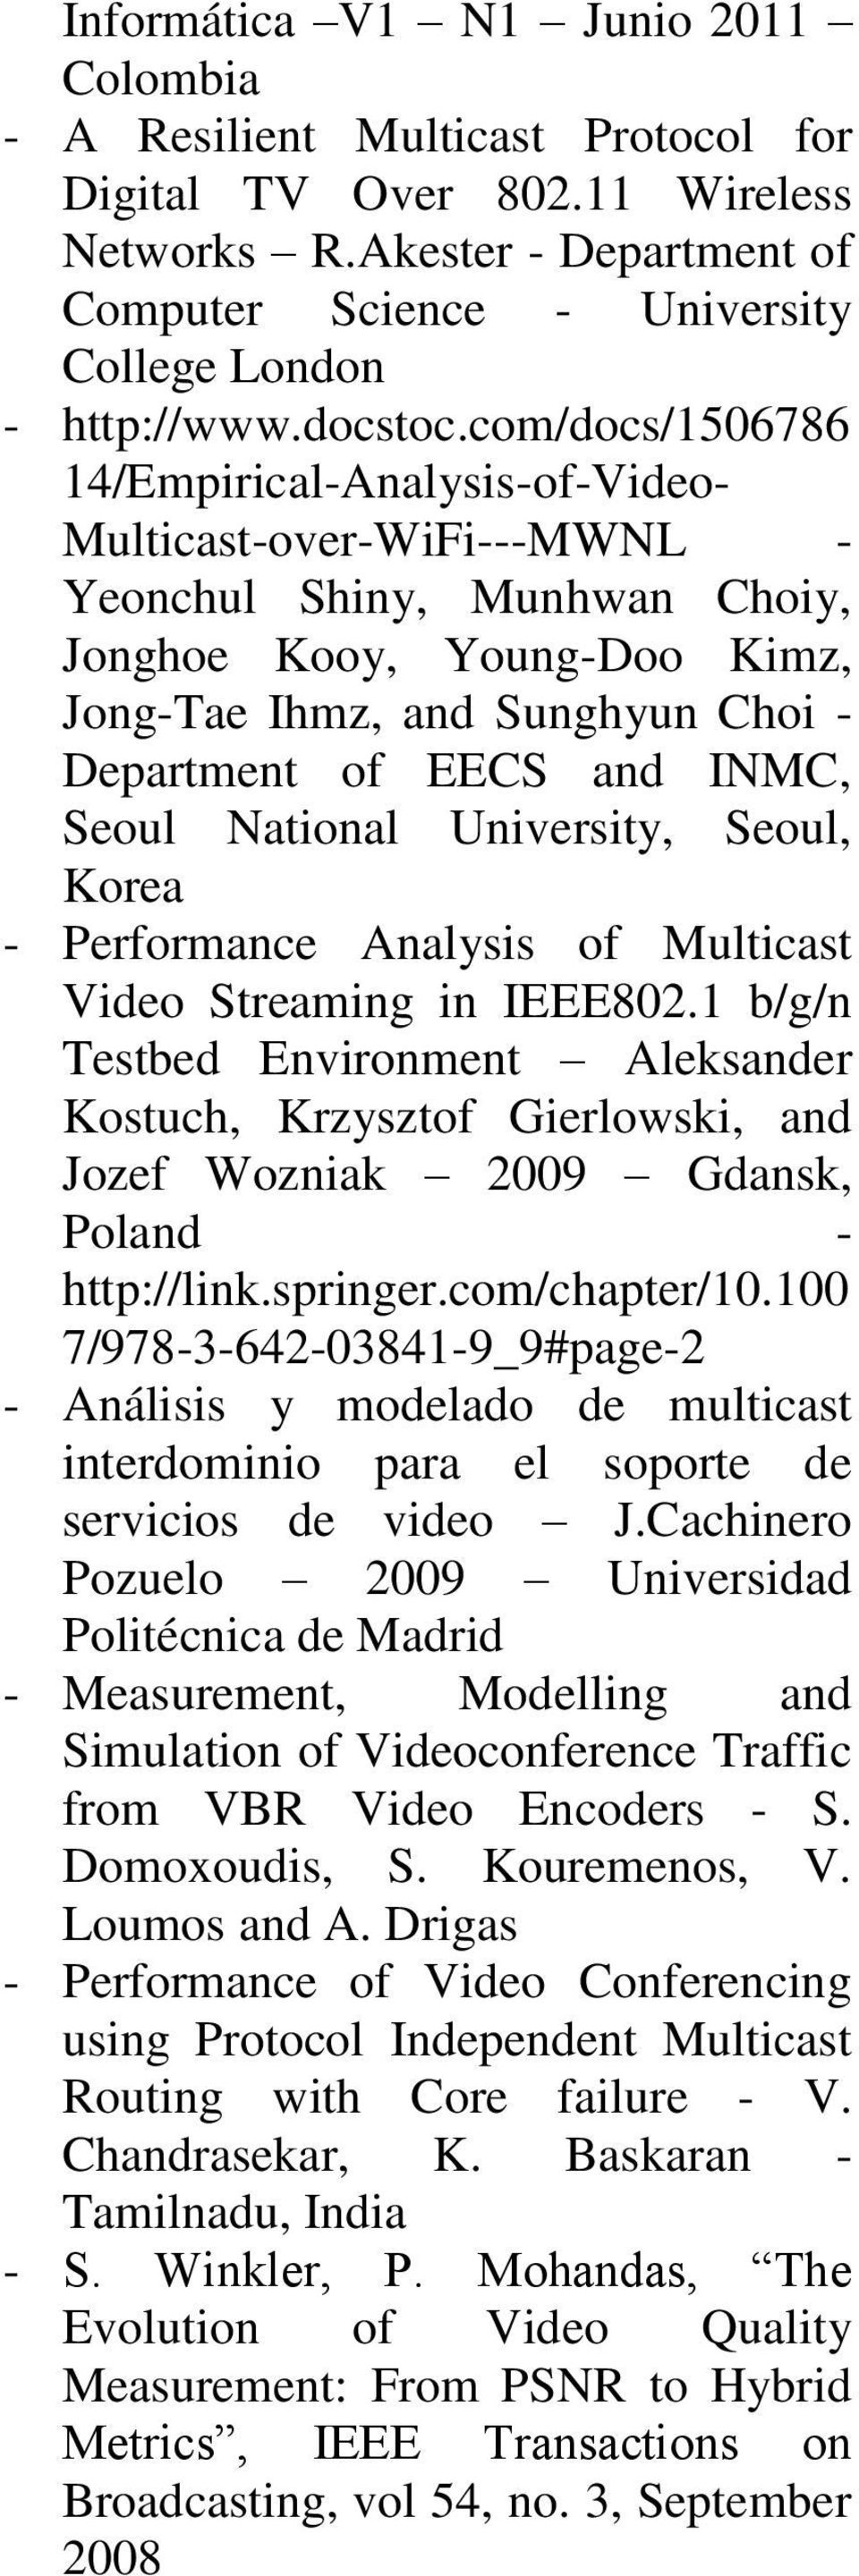 com/docs/1506786 14/Empirical-Analysis-of-Video- Multicast-over-WiFi---MWNL - Yeonchul Shiny, Munhwan Choiy, Jonghoe Kooy, Young-Doo Kimz, Jong-Tae Ihmz, and Sunghyun Choi - Department of EECS and